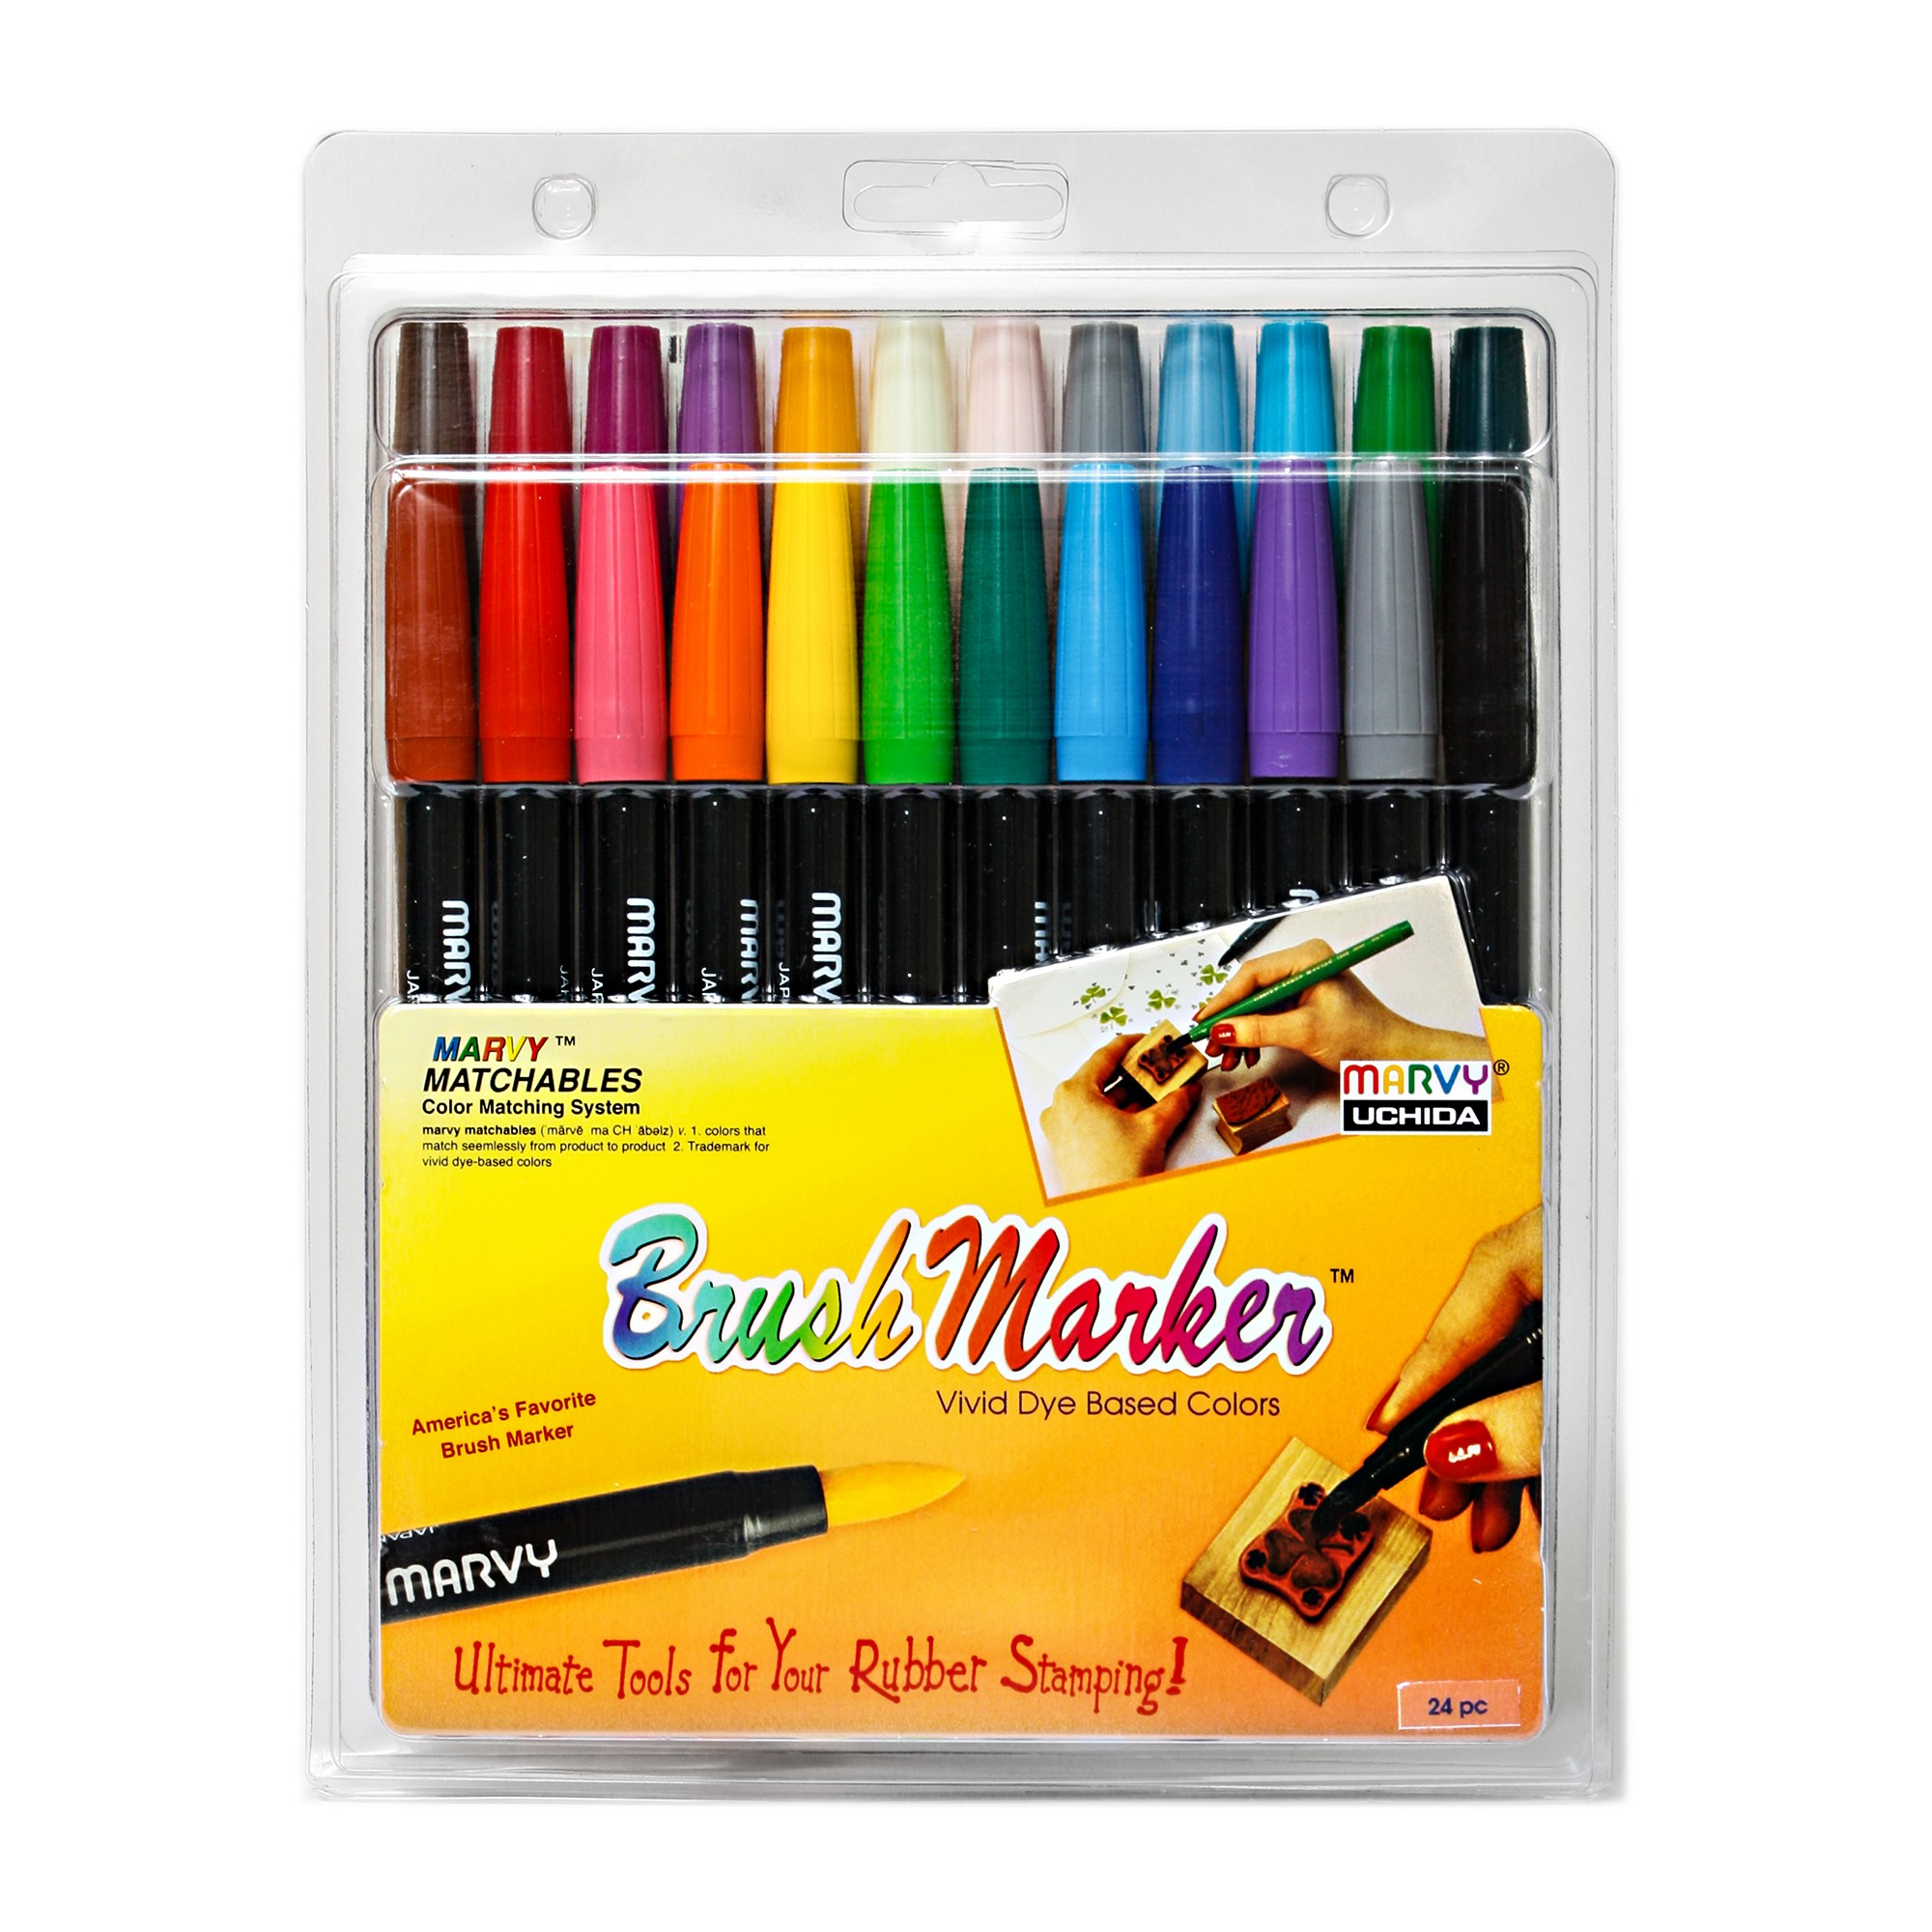 Brush Markers Multicolor 24ct Marvy Uchida Markers Brush